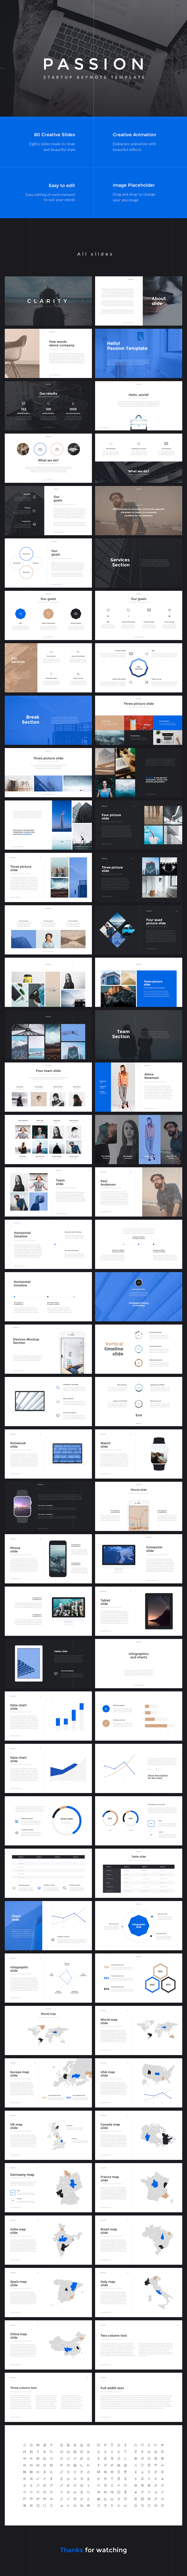 Passion Startup Keynote Template - Keynote Templates Presentation Templates